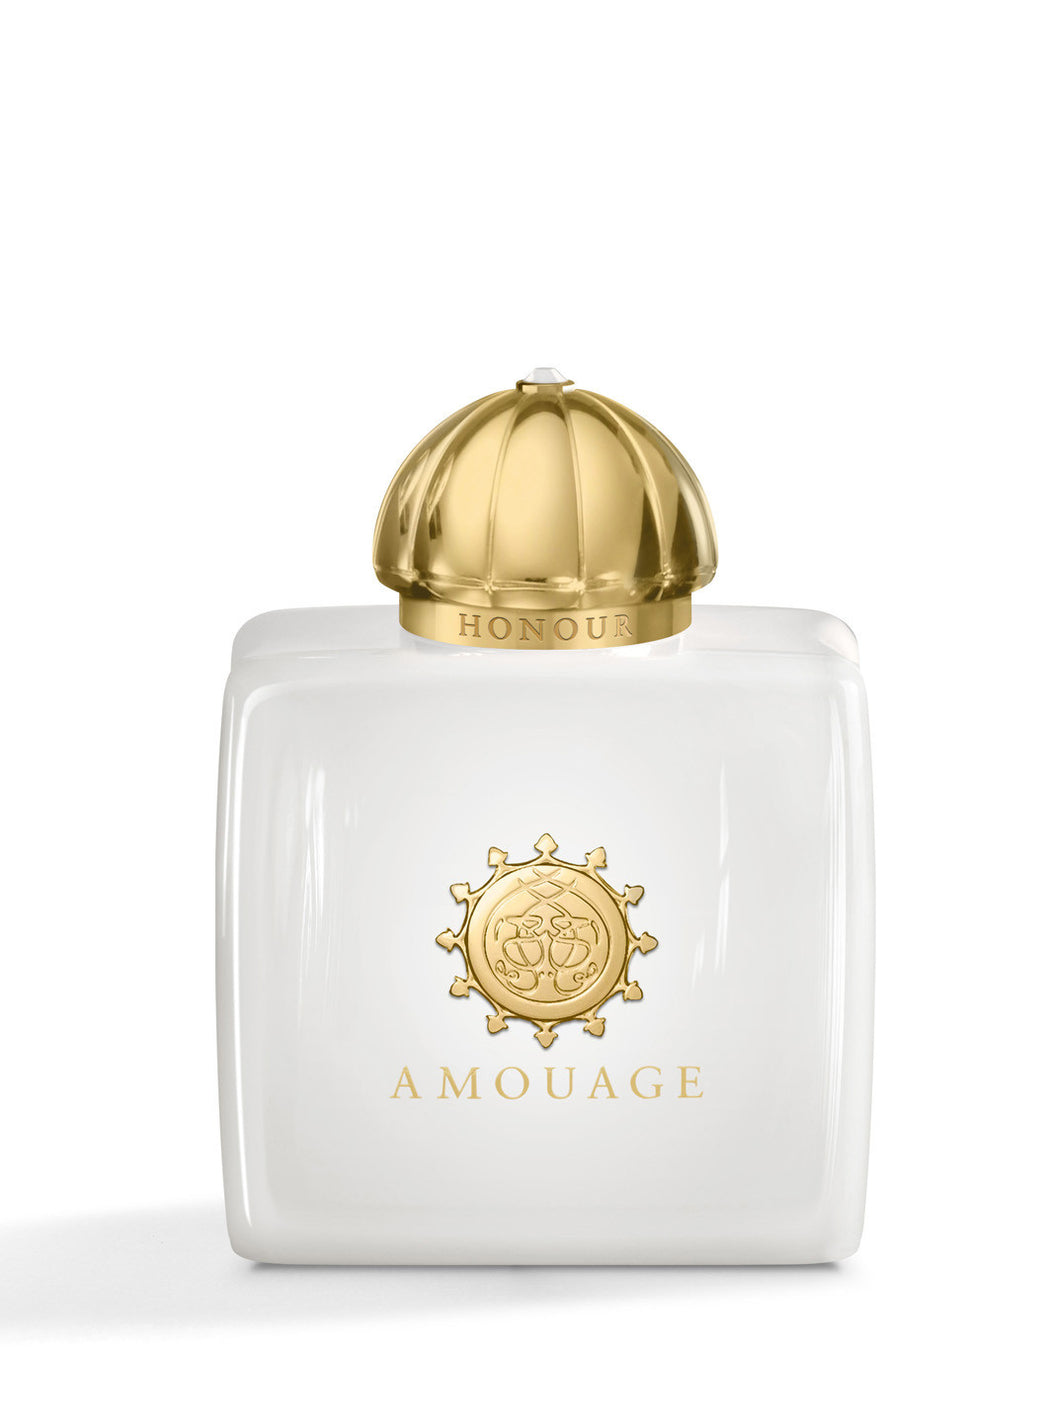 AMOUAGE HONOUR 100ML